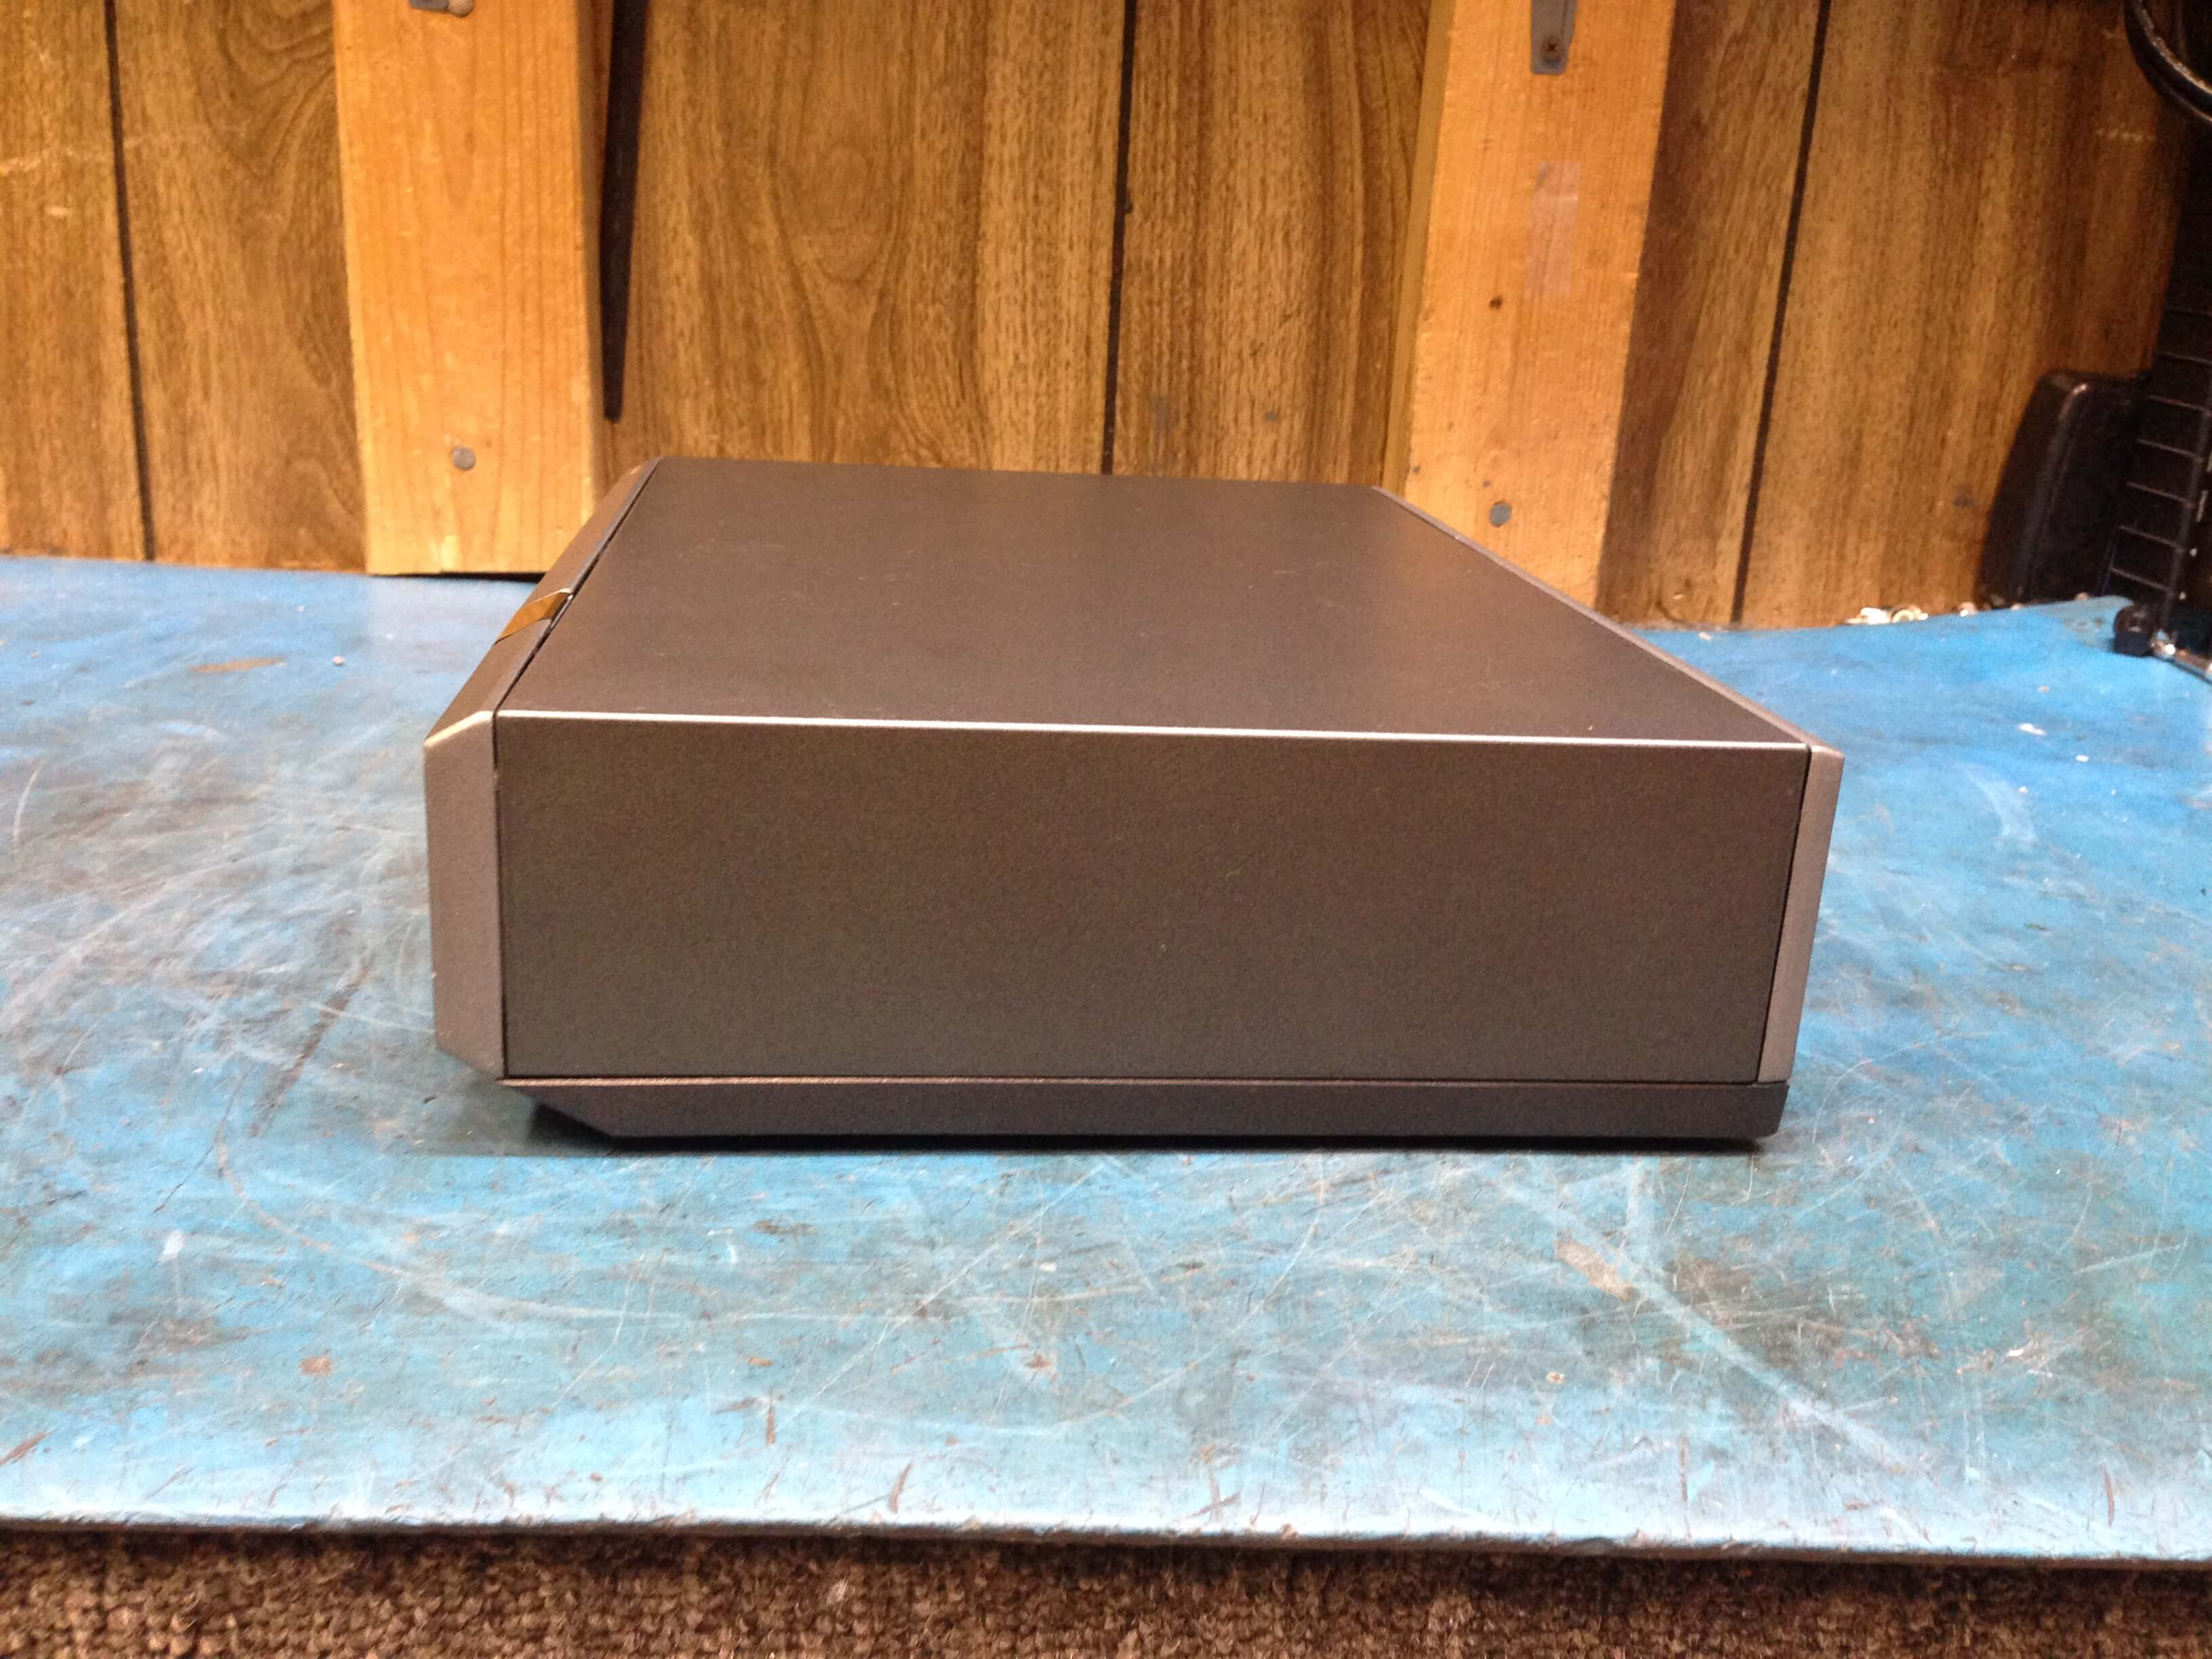 Quad 66 System (preamplifier, tuner, cd player)